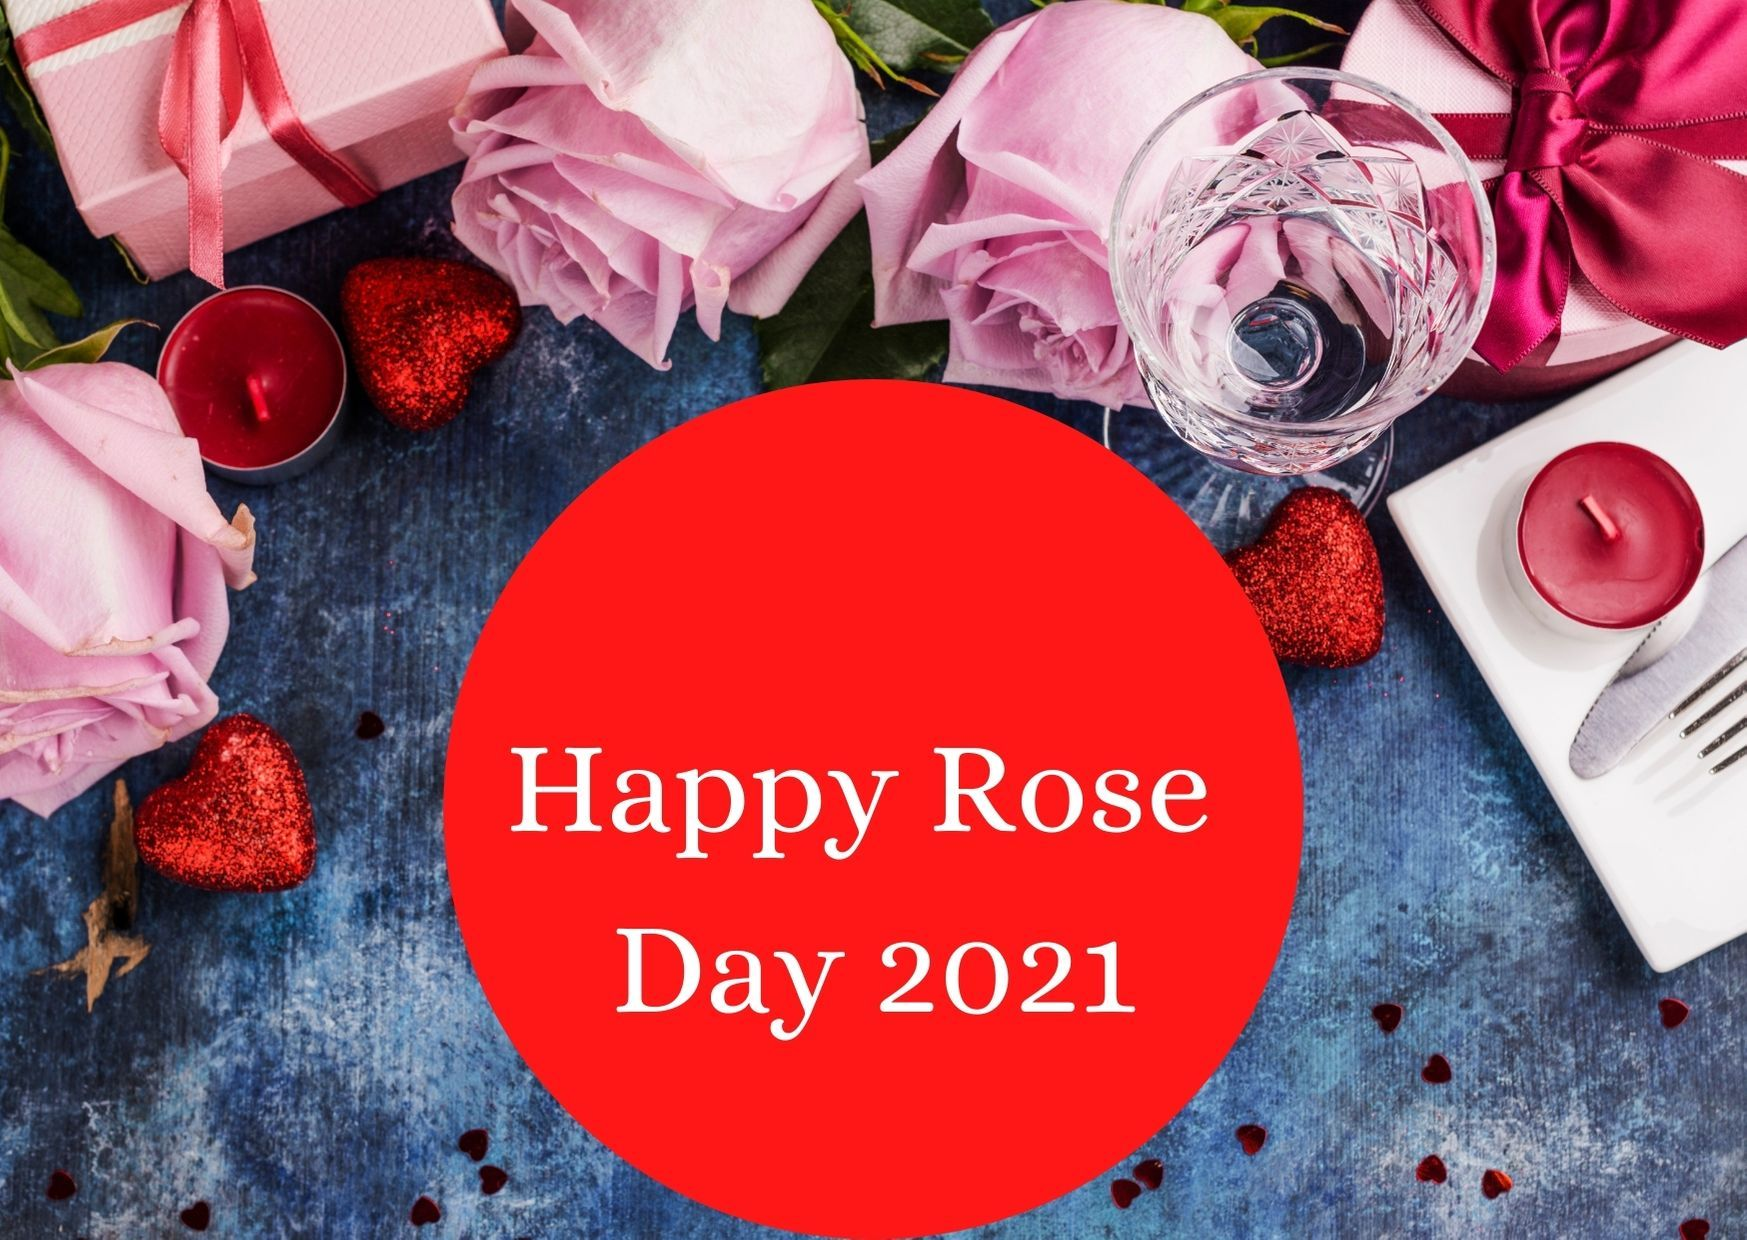 Happy Rose Day Wallpapers In 2021 Happy Rose Day Wallpaper Happy Rose Day 2021 Wallpapers